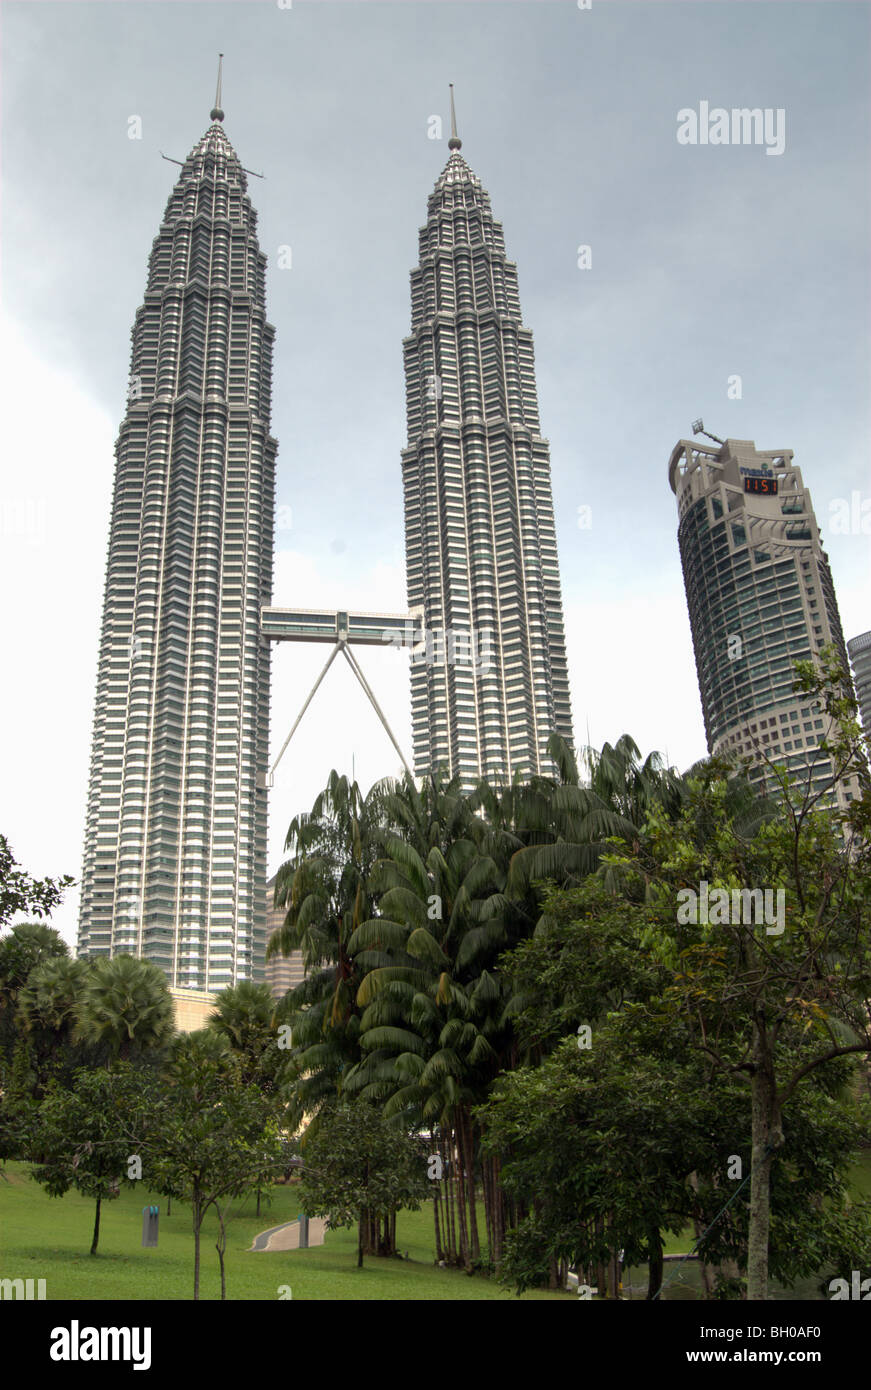 View of the Petronas Towers from the nearby park, Kulala Lumpur, Malaysia - Stock Image